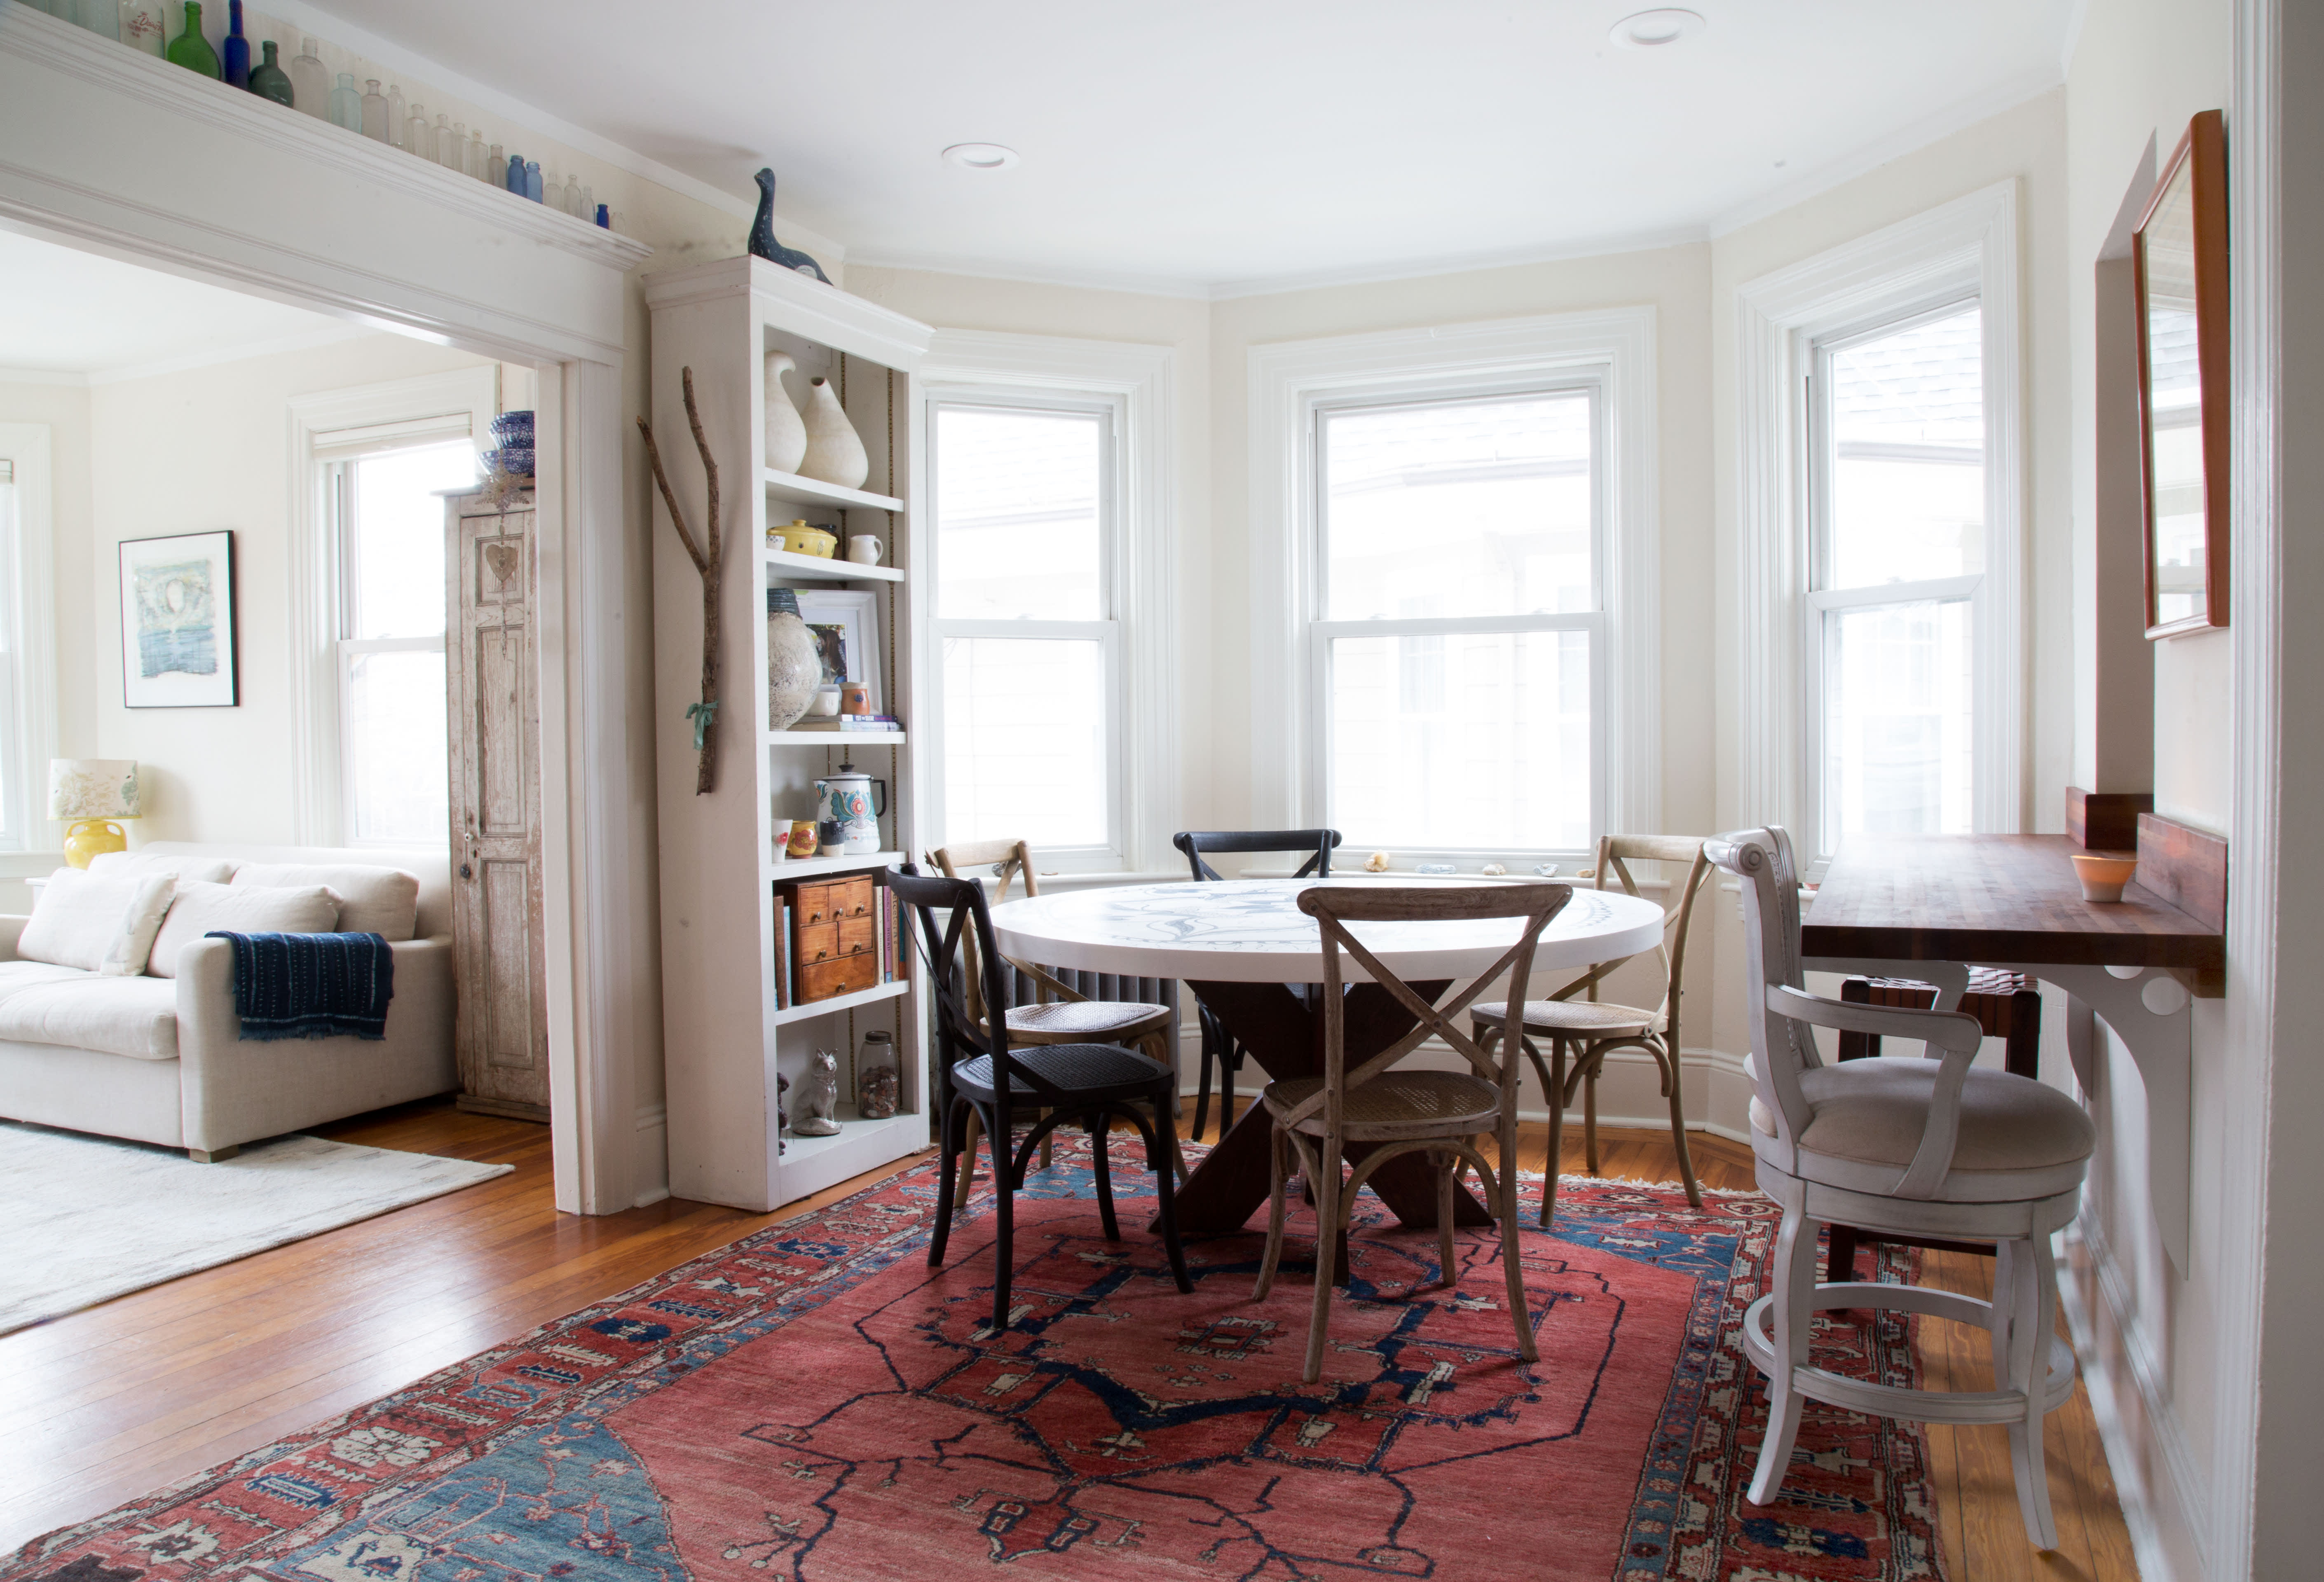 House Tour: A Swedish Country Style 1900s Victorian